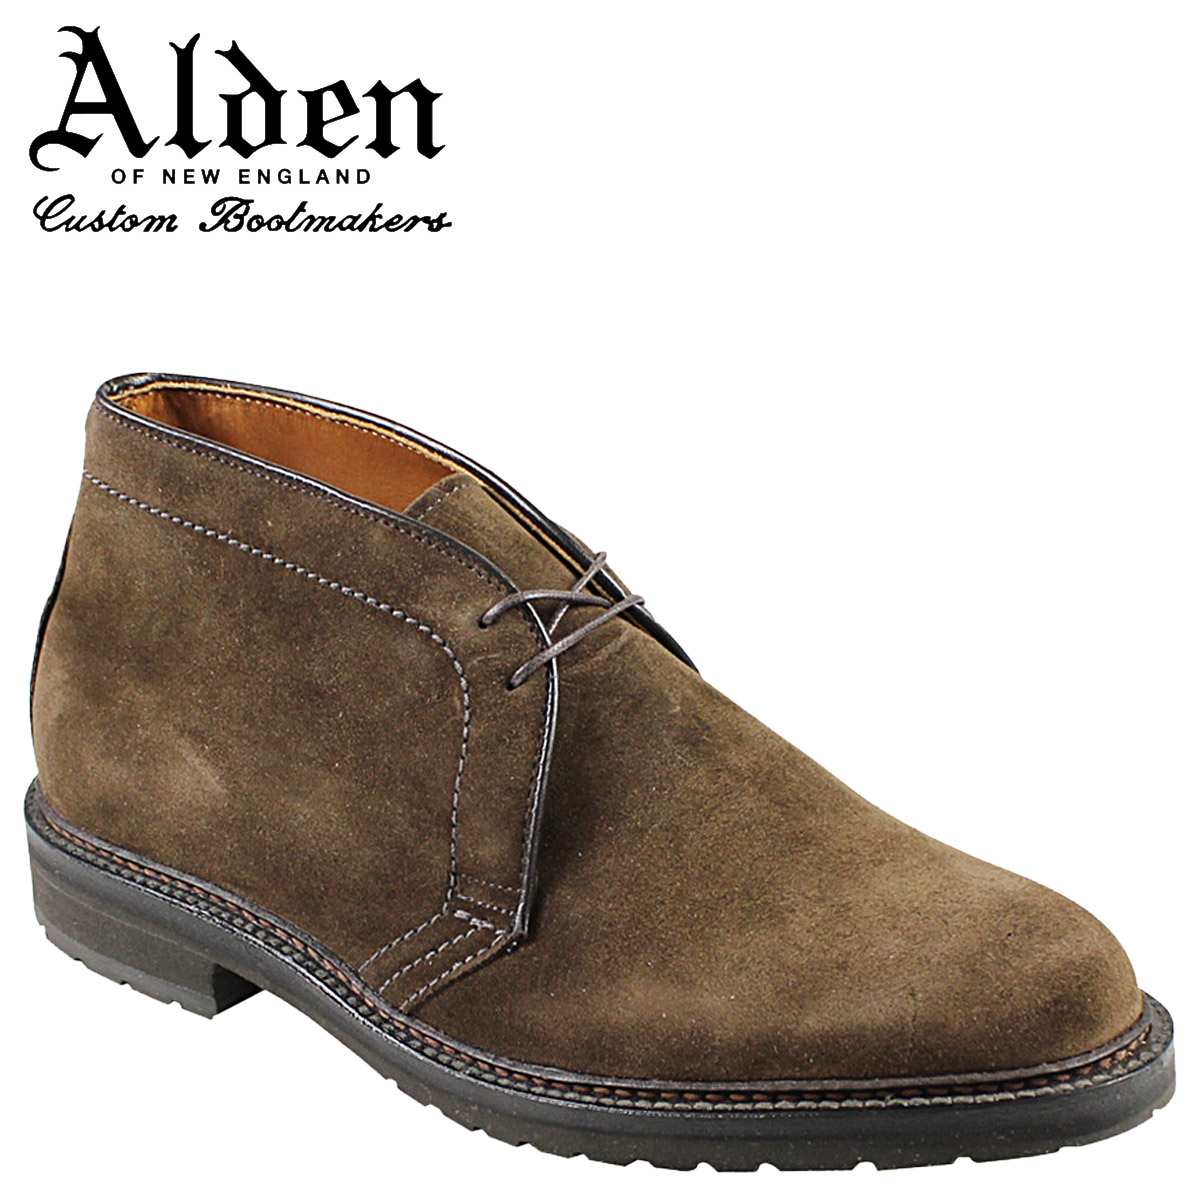 Sugar Online Shop Alden Boots Chukka Boot D Wise Made Island Shoes Slip On Dark Brown Leather In Usa Suede Mens 1273s 7 6 New Stock Regular